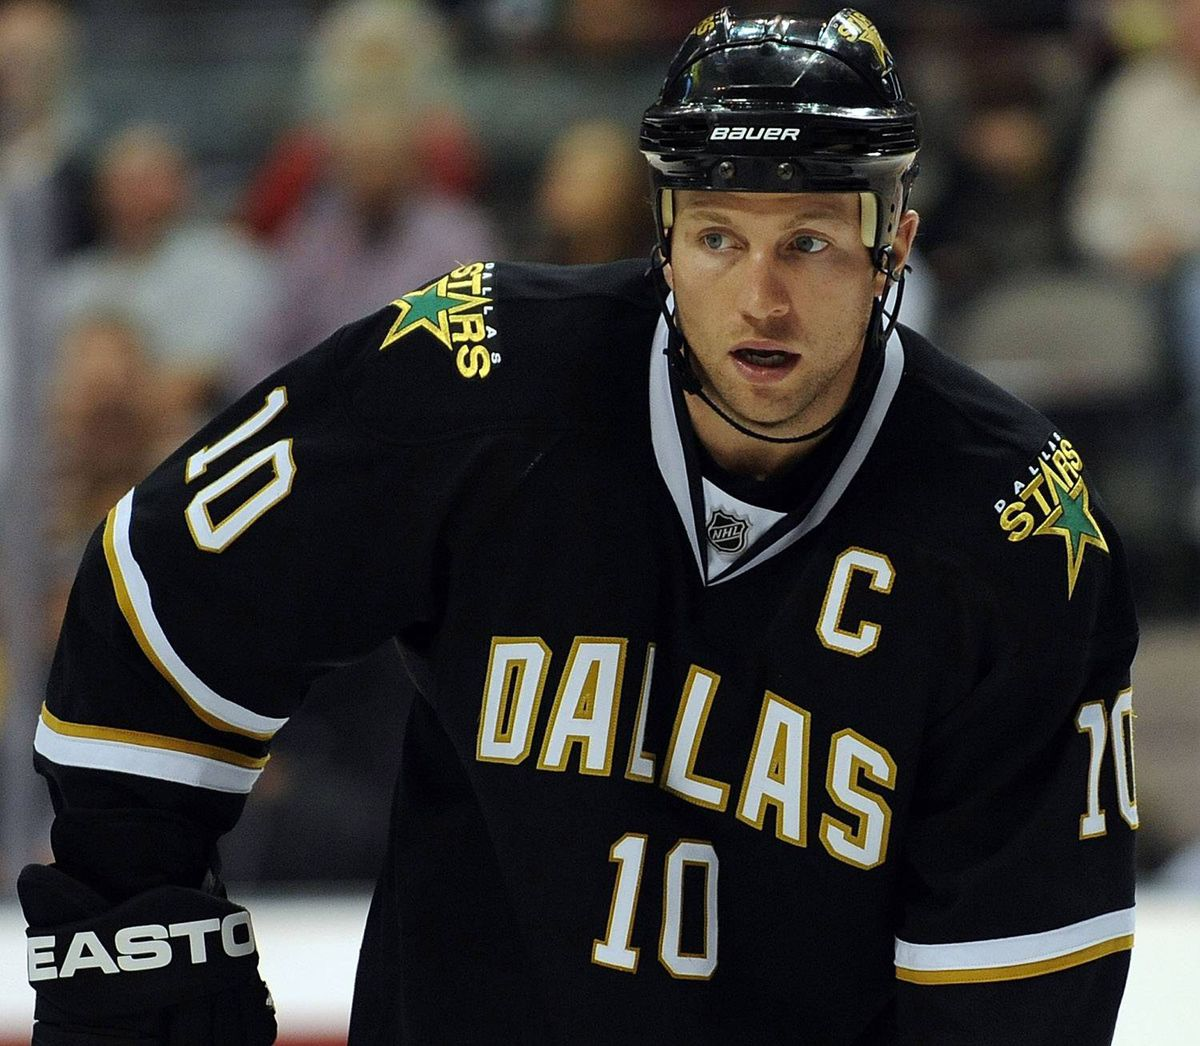 Center Brenden Morrow #10 of the Dallas Stars on November 19, 2009 in Dallas, Texas. (Photo by Ronald Martinez/Getty Images)